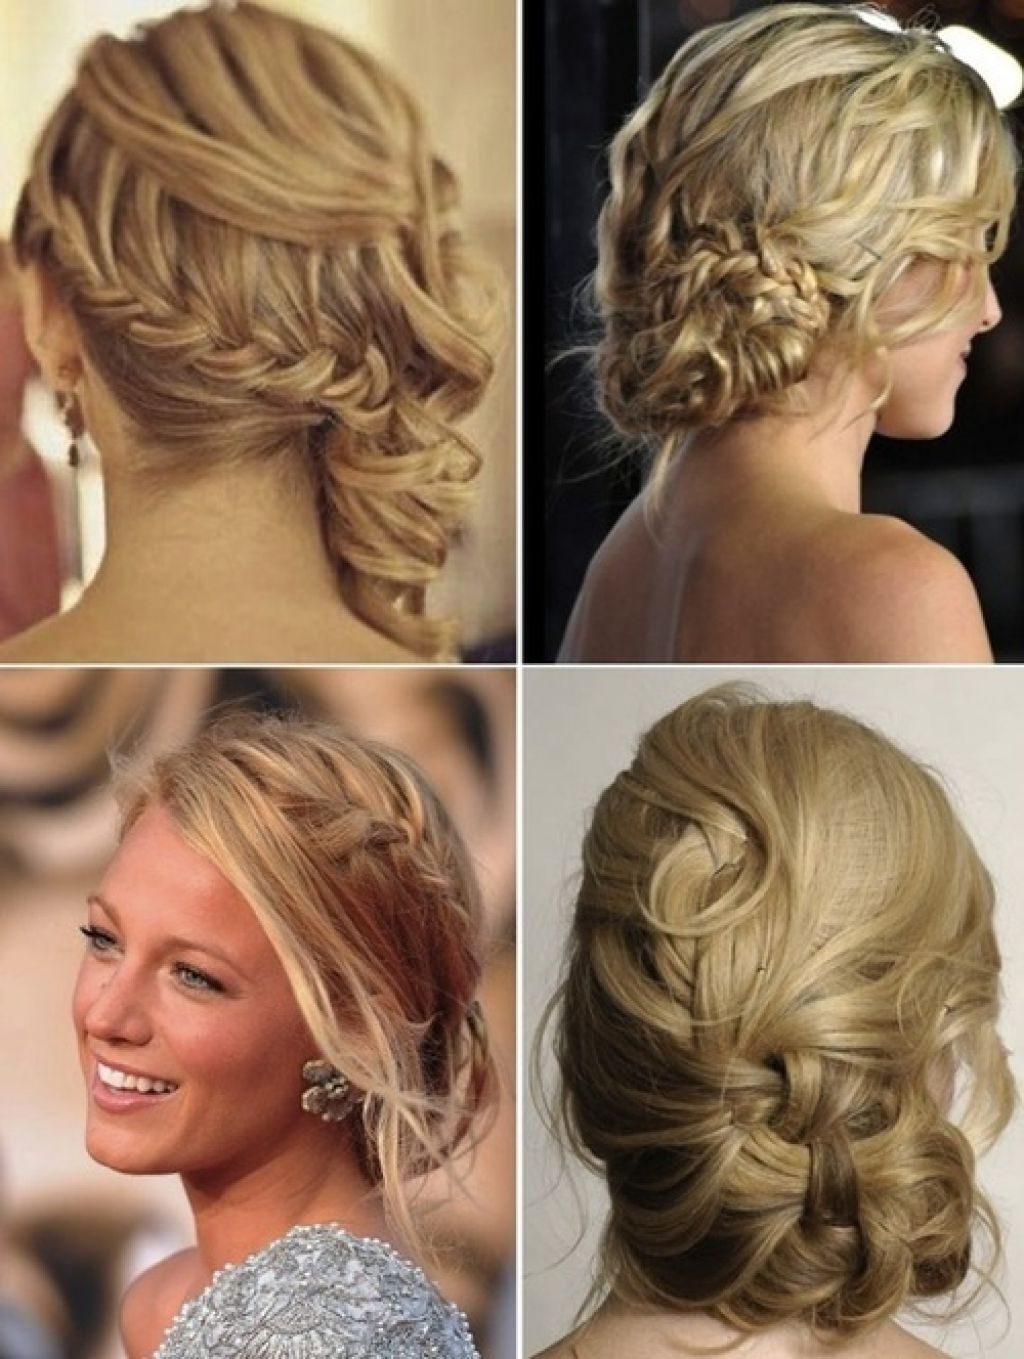 Casual Wedding Hairstyles For Long Hair – Hairstyle For Women & Man Throughout Famous Wedding Hairstyles For Medium Length With Brown Hair (View 5 of 15)